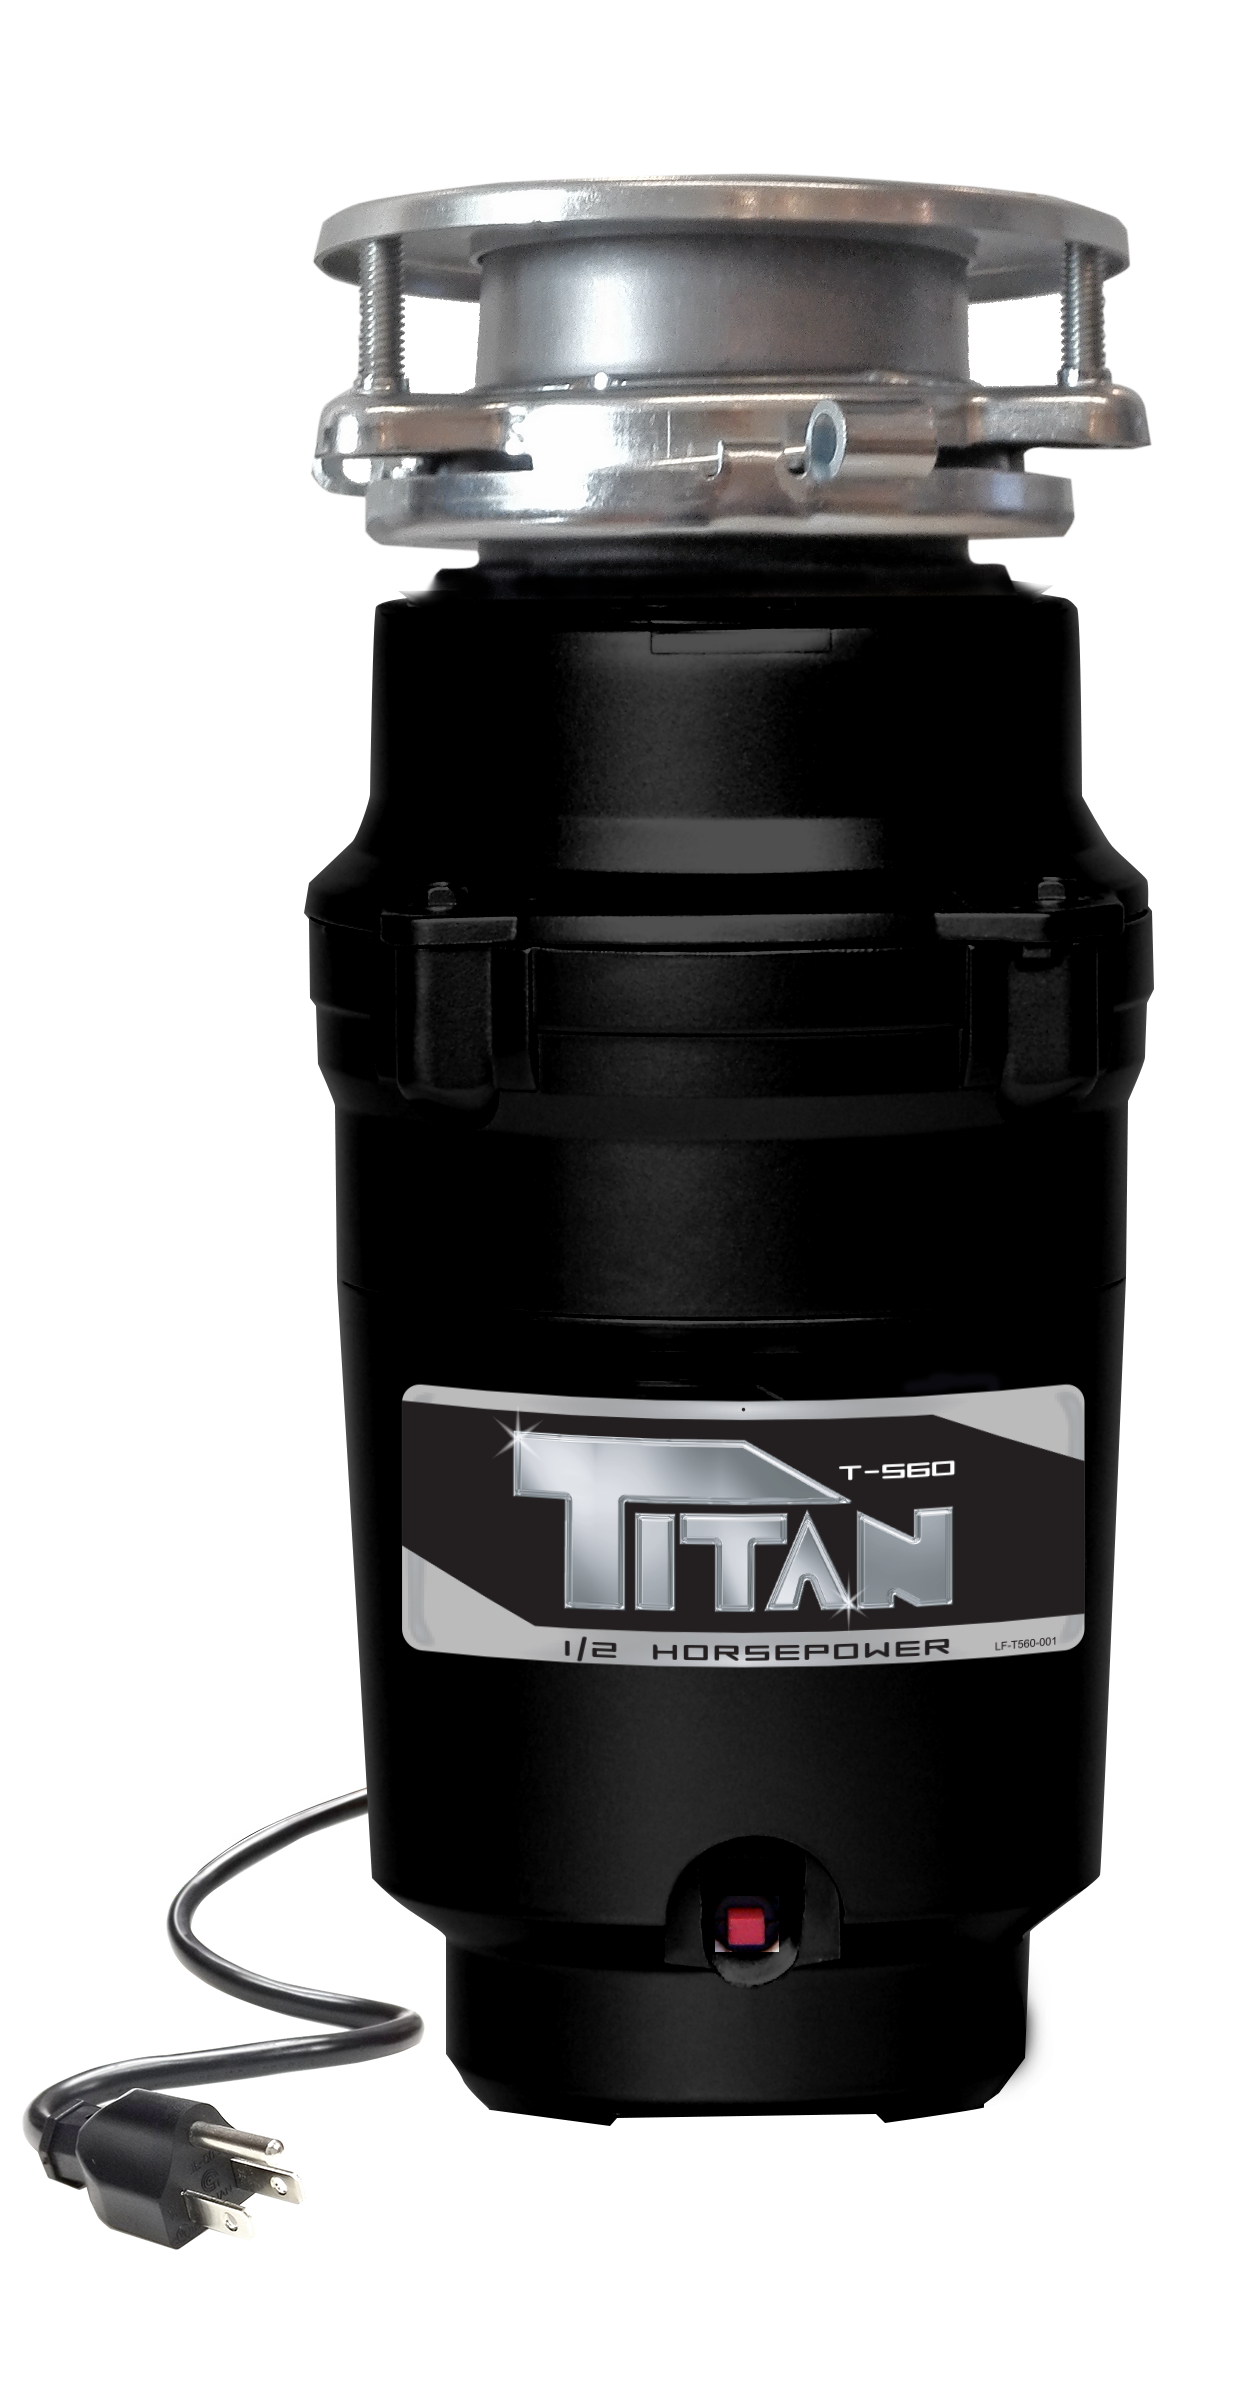 Titan Garbage Disposals Model T-560